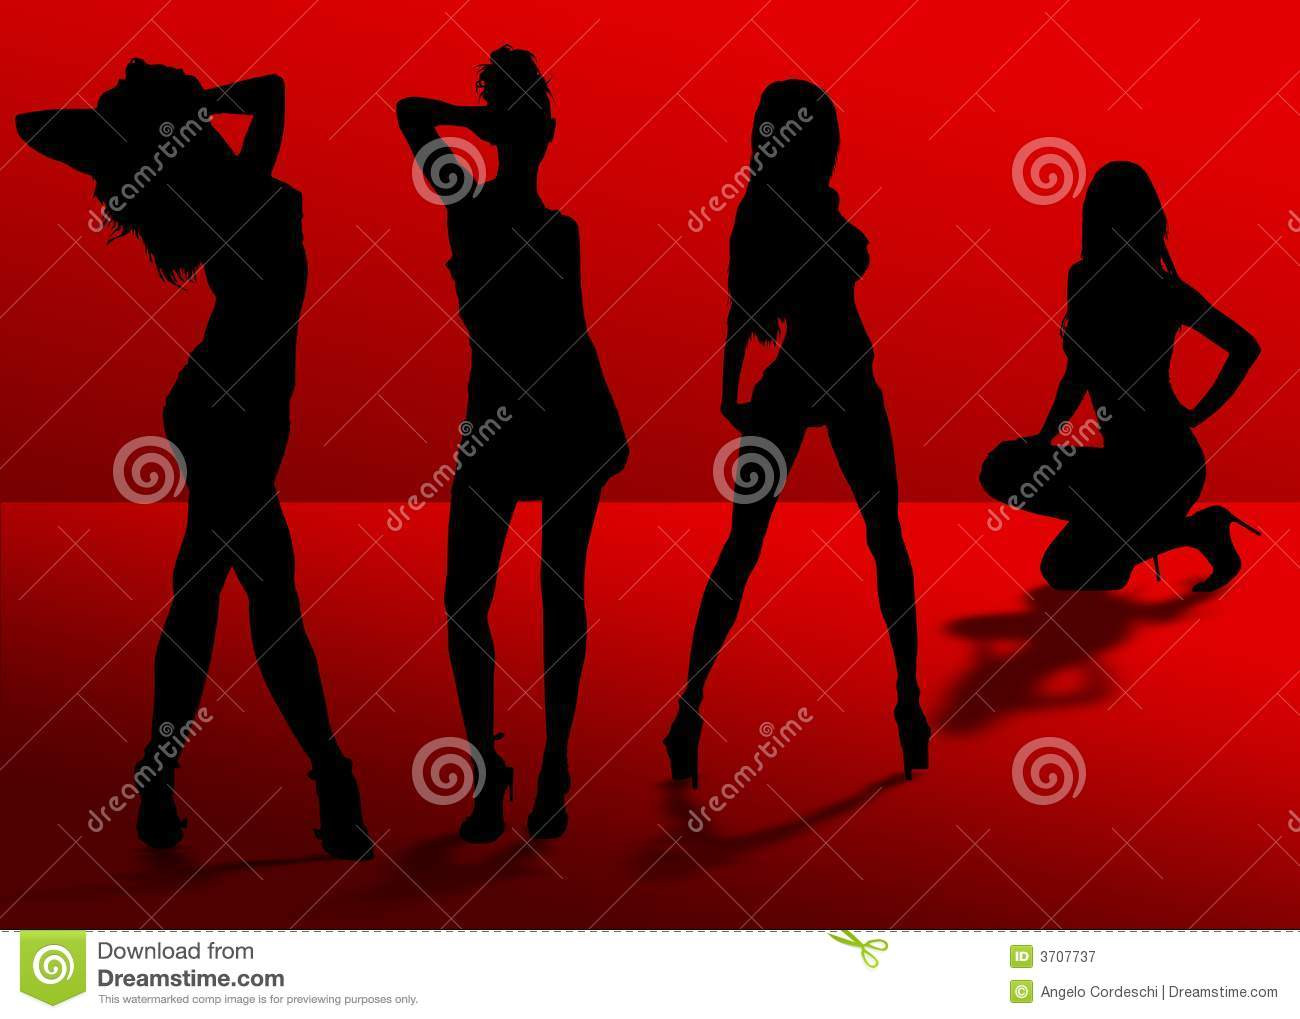 Four Silhouette Women Shadows Royalty Free Stock